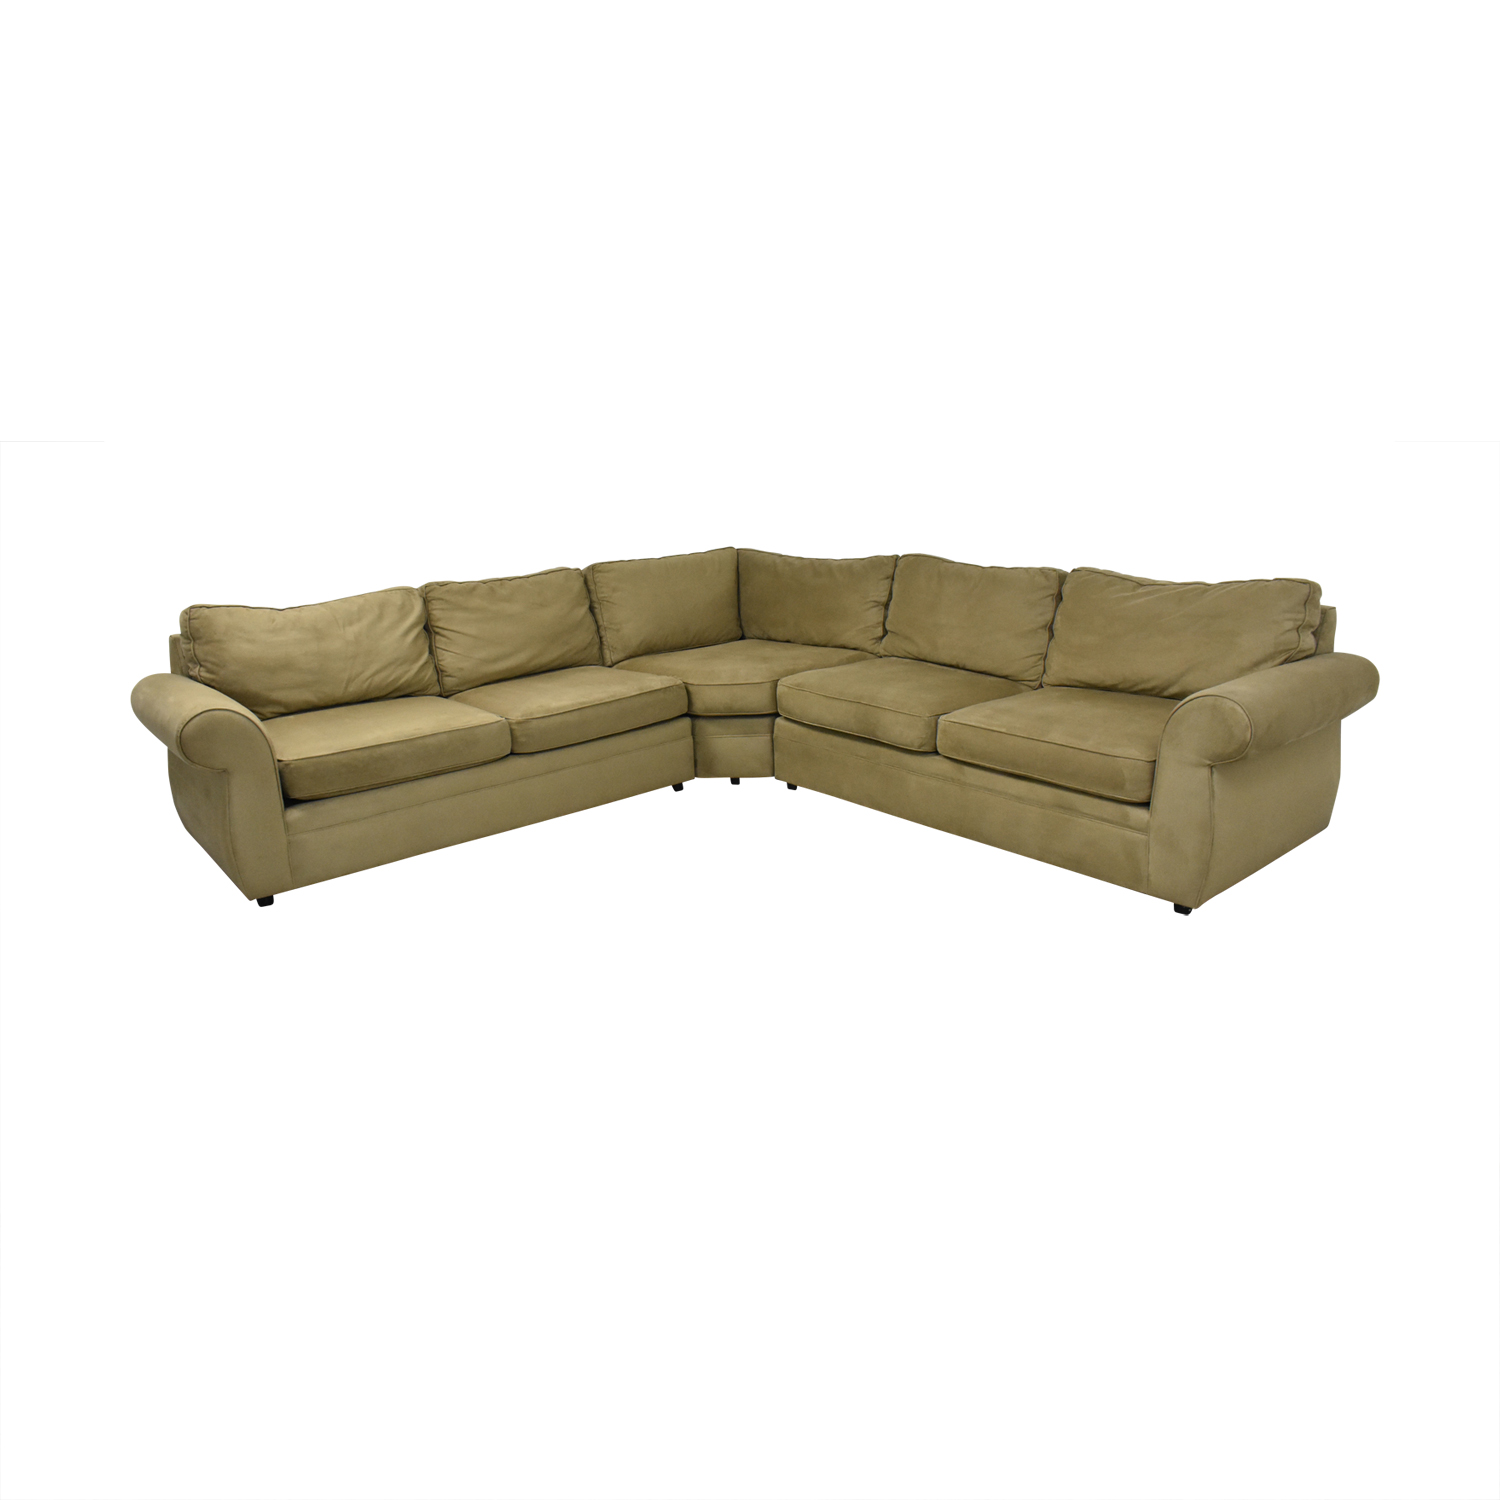 buy Pottery Barn Pearce Roll Arm L Shaped Sectional Sofa Pottery Barn Sectionals